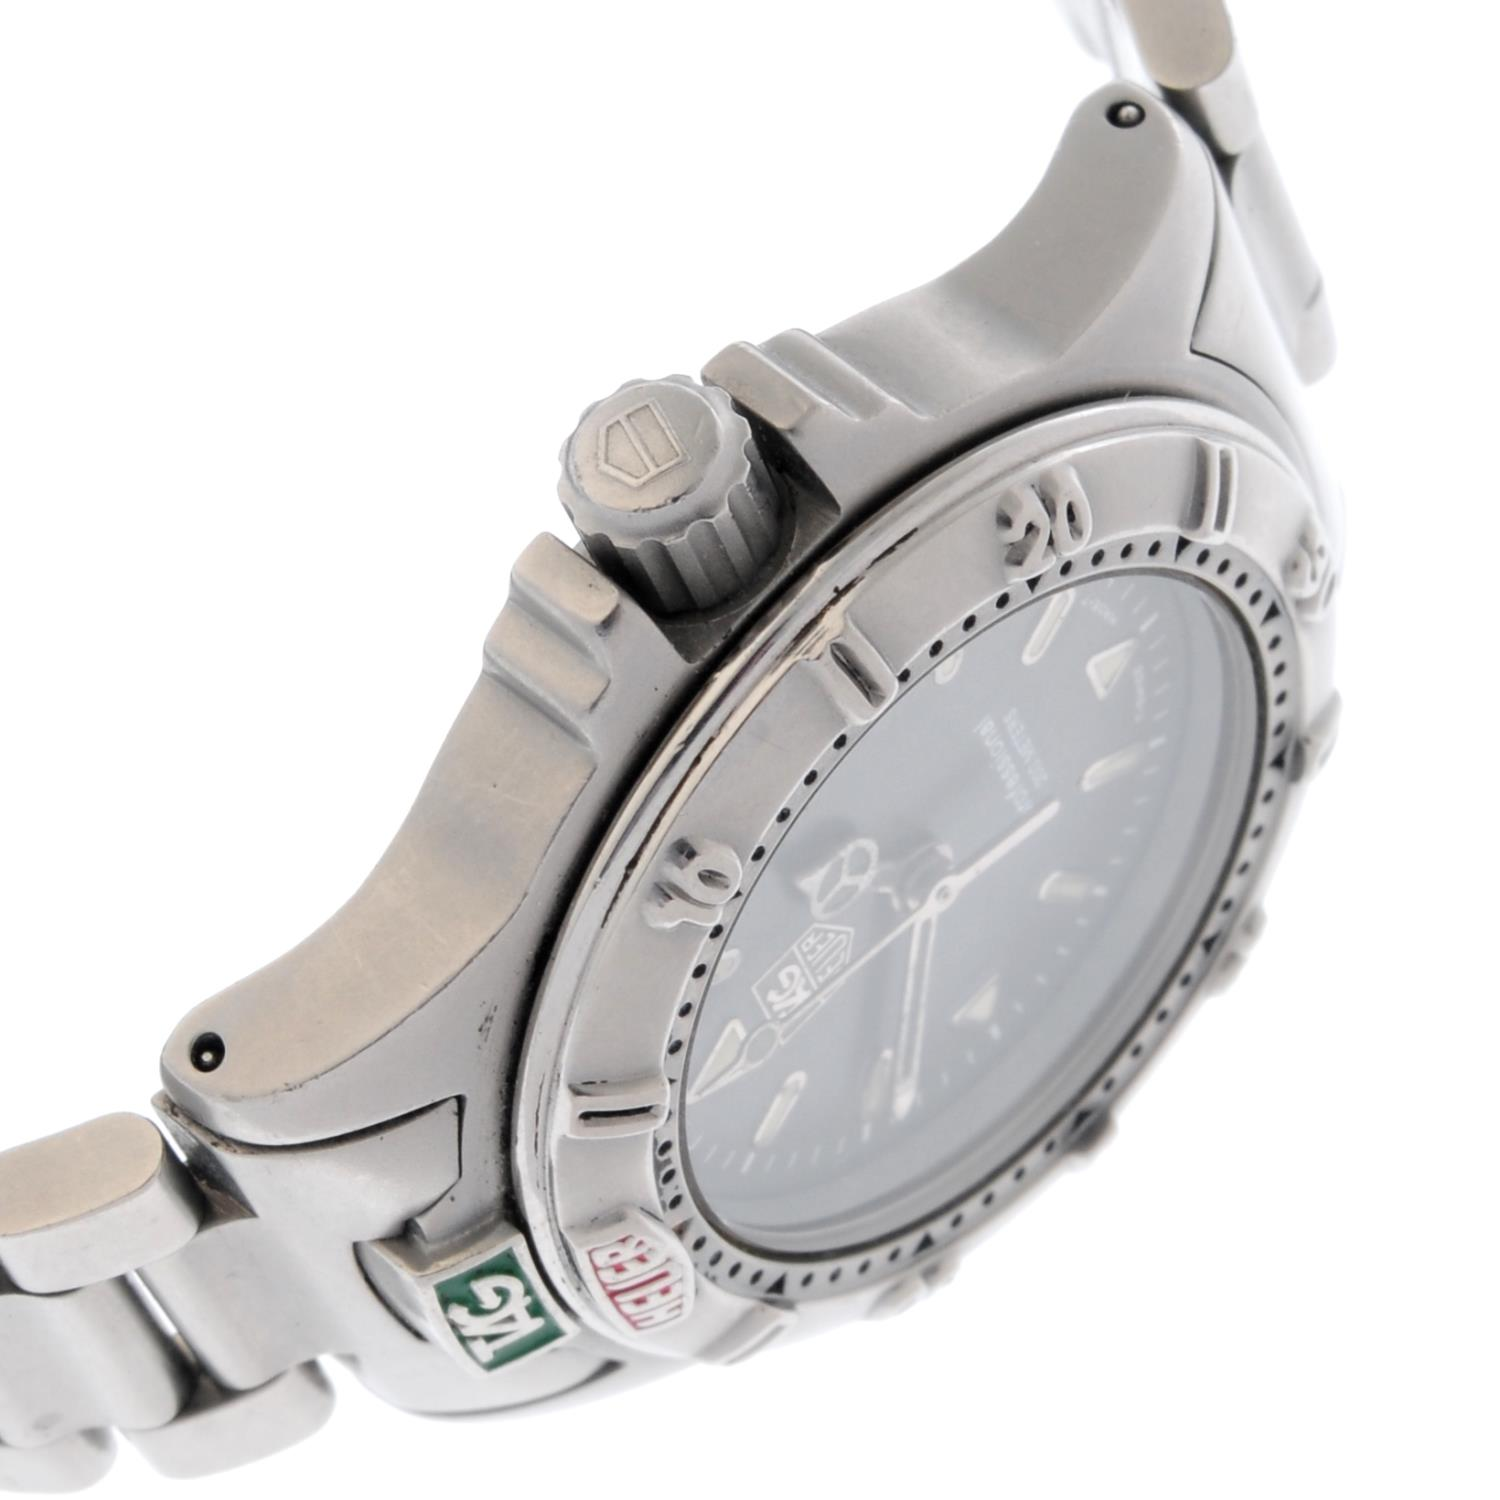 TAG HEUER - a 4000 Series bracelet watch. - Image 3 of 5